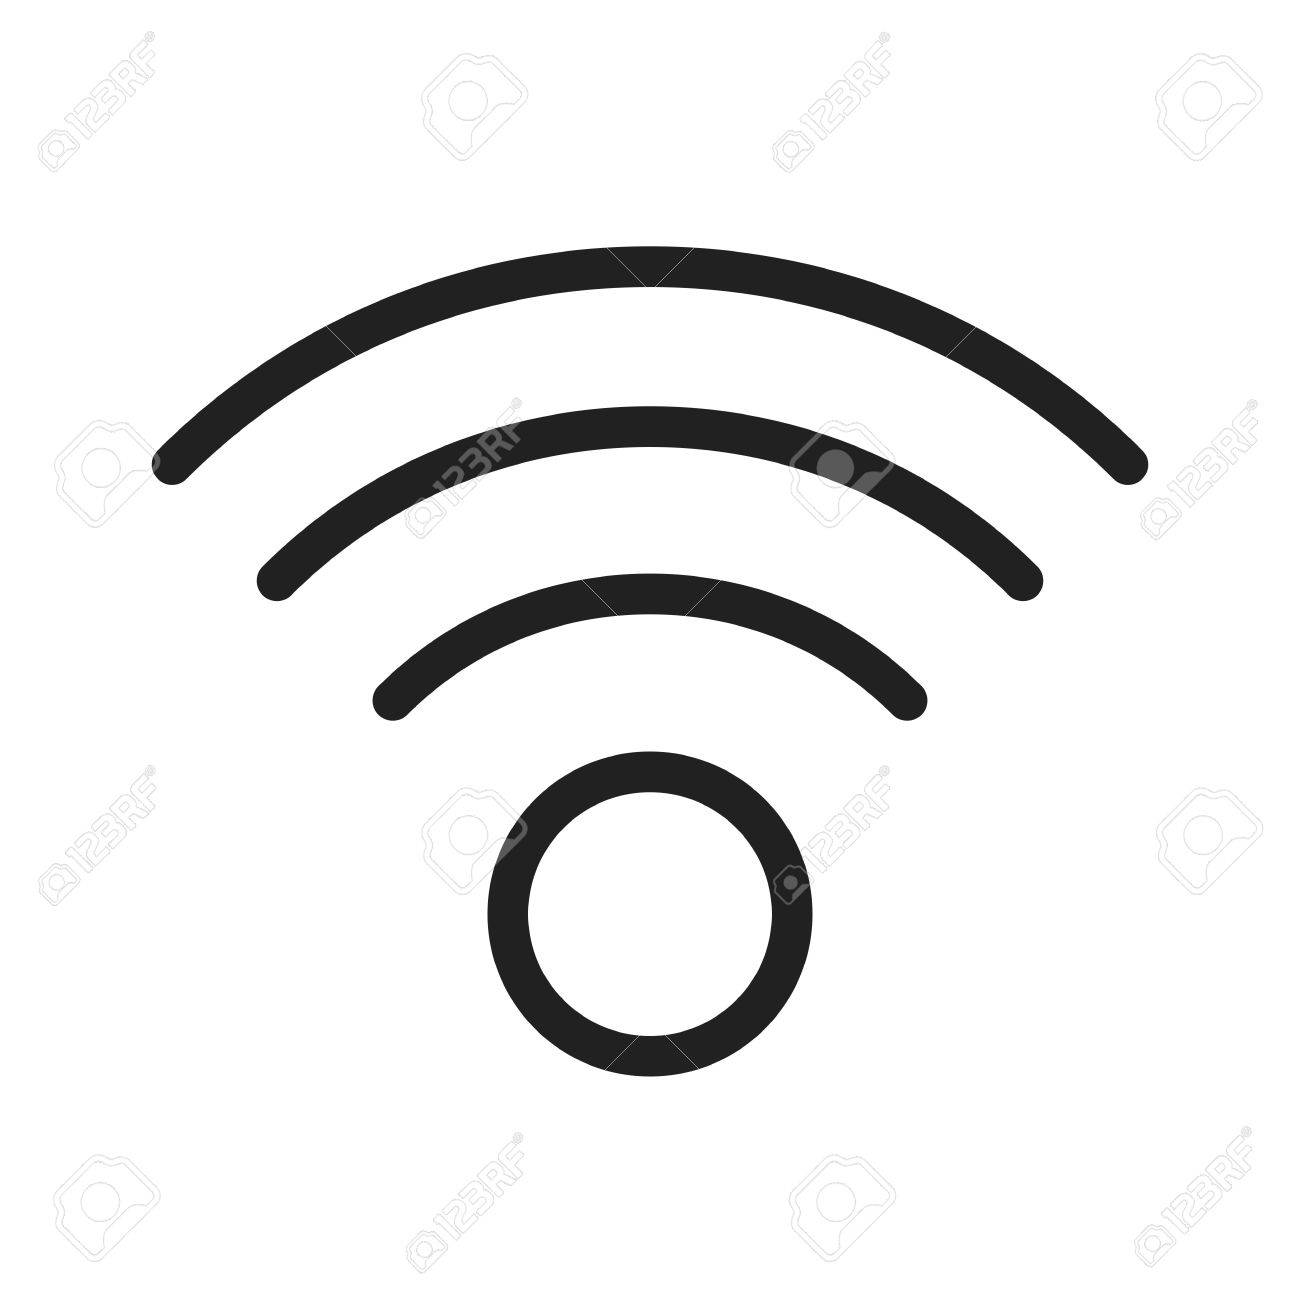 Wireless internet icon dolgular wifi wireless internet icon vector image can also be used biocorpaavc